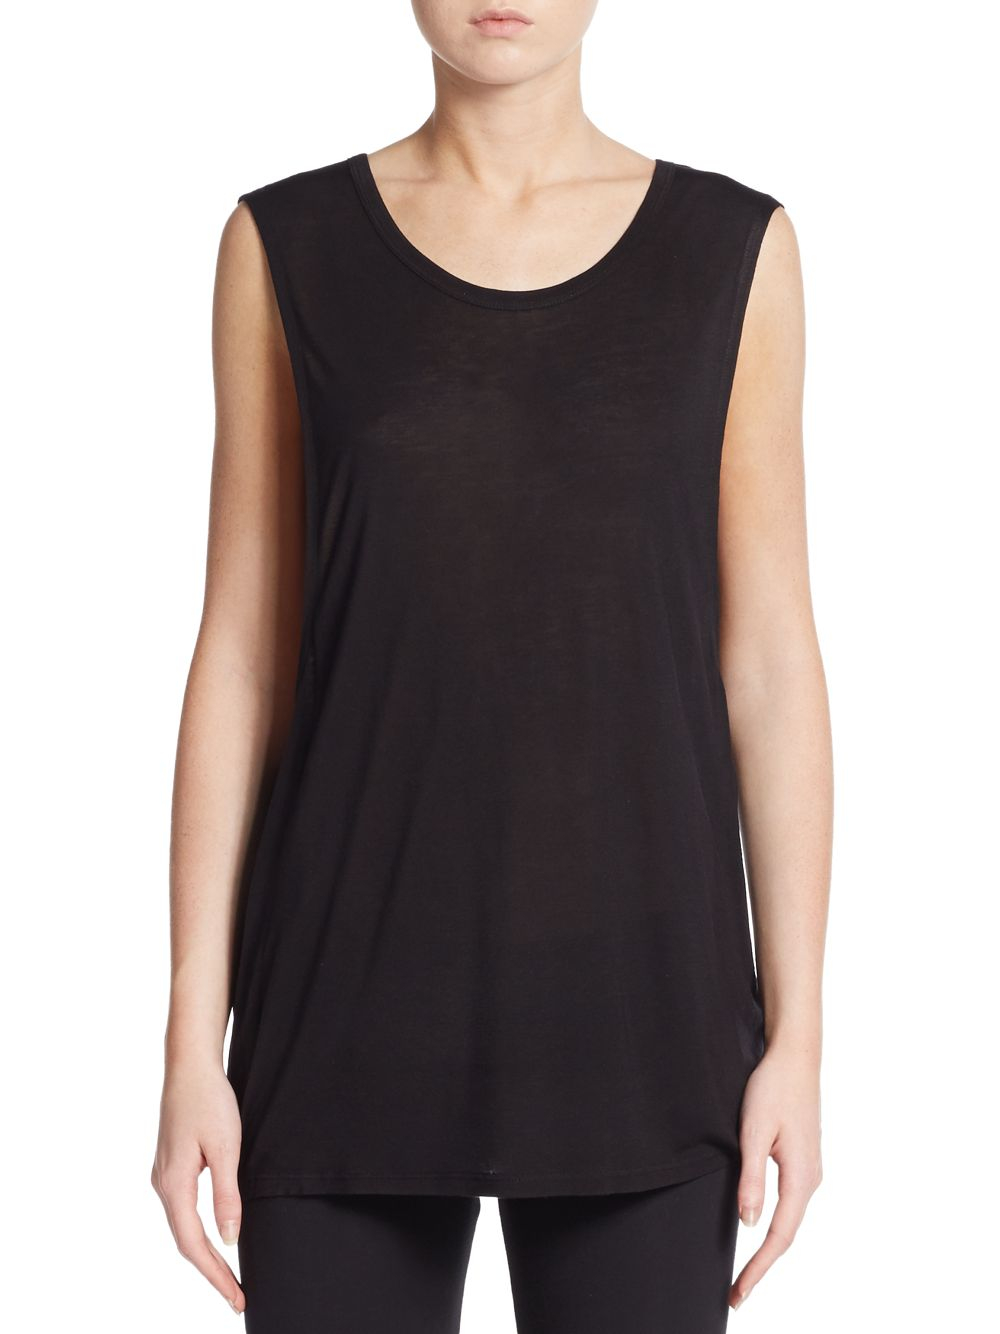 57e65d2f7 Lyst - Betsey Johnson Fly With Me Muscle Tank Top in Black